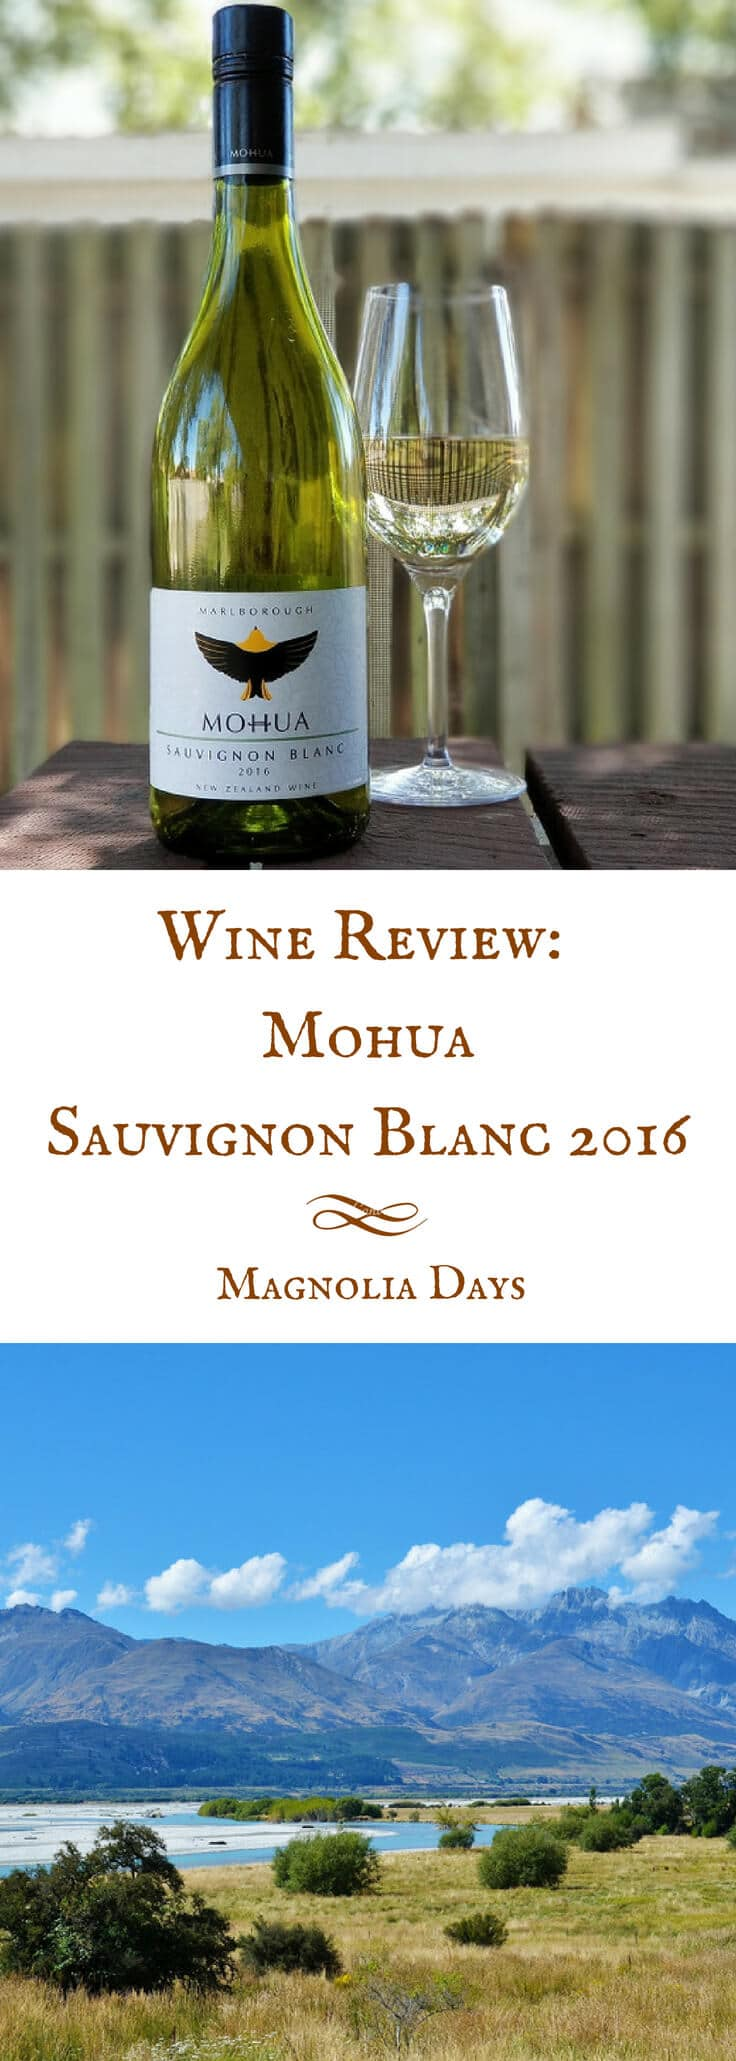 A review of Mohua Sauvignon Blanc 2016, a white wine from Marlborough, New Zealand with a bright, tropical, and lightly vegetal flavor. Find out why I liked it, plus recommended food pairings.